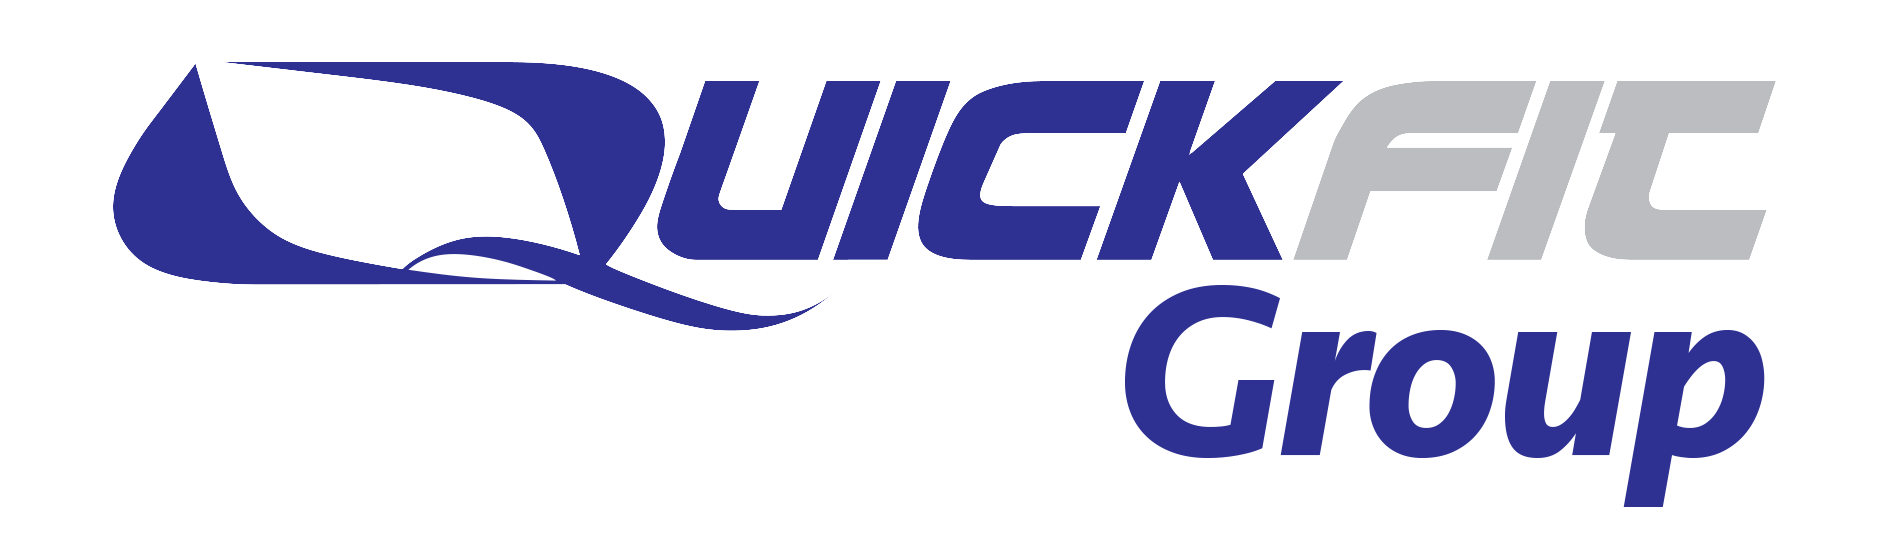 Quickfit Group